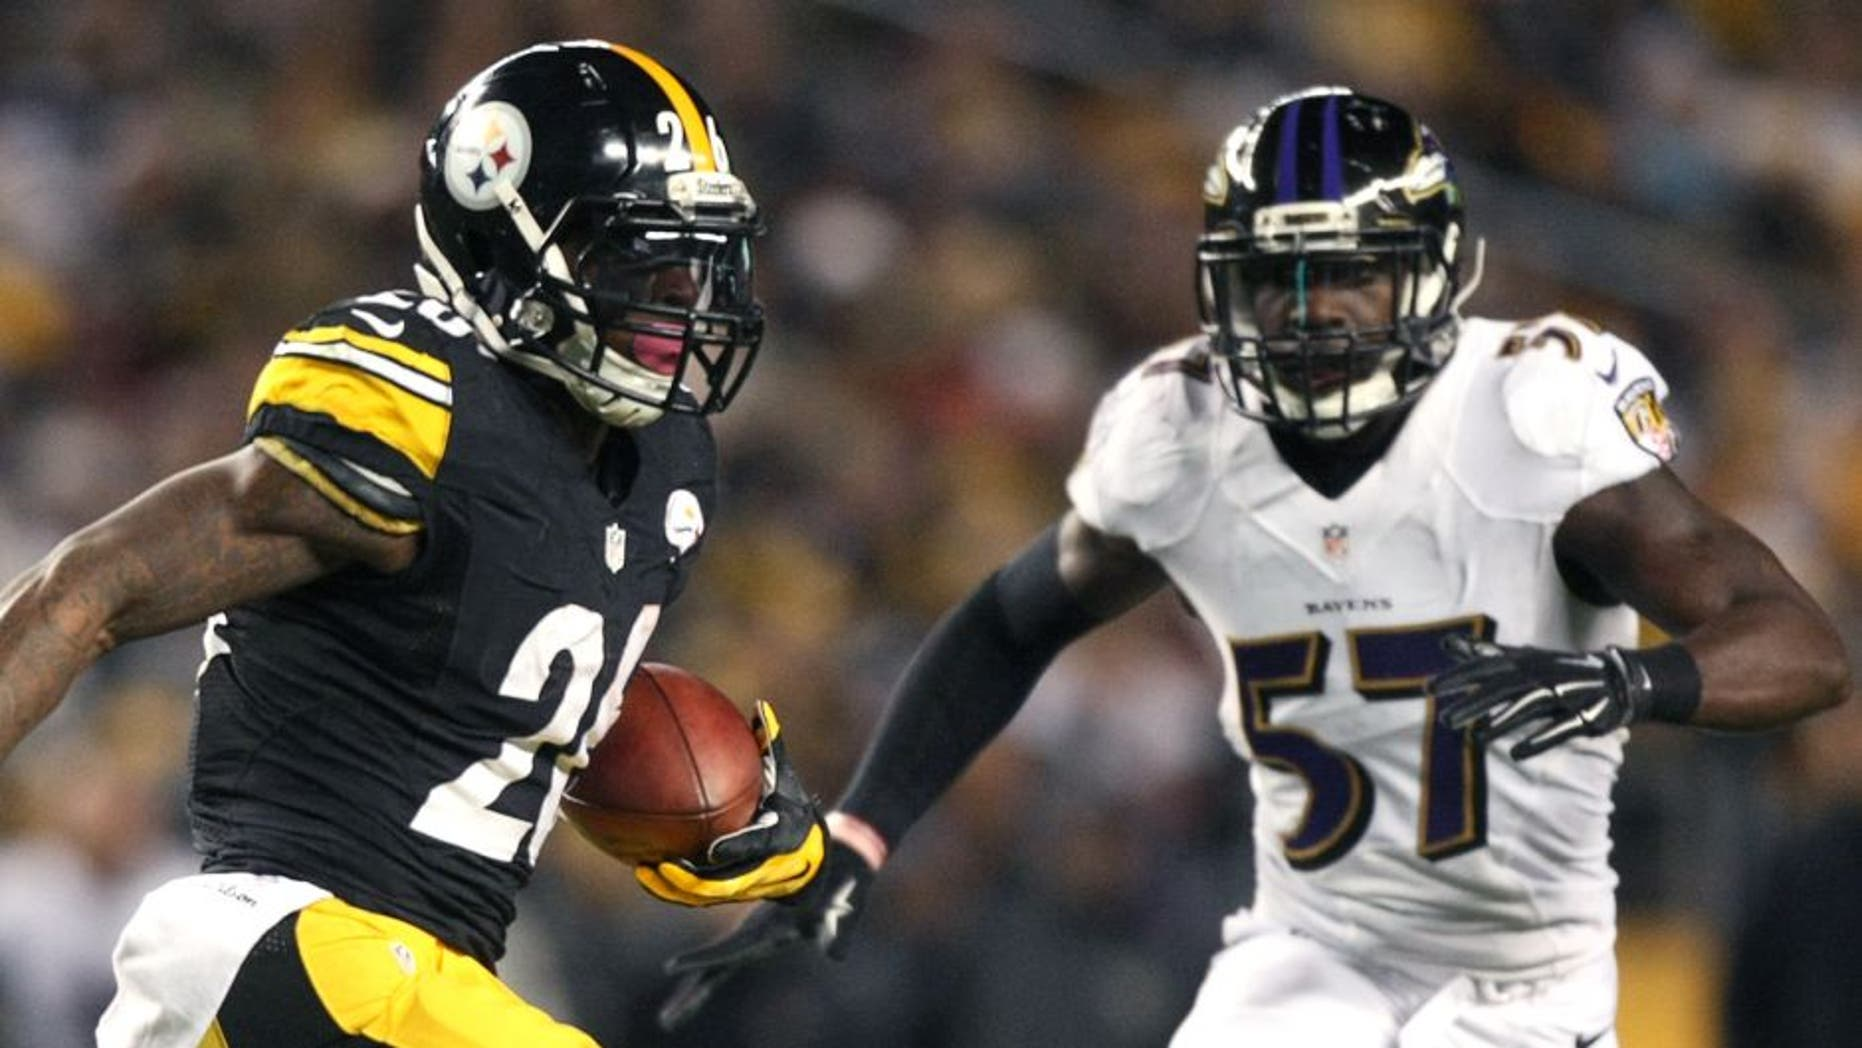 Nov 2, 2014; Pittsburgh, PA, USA; Pittsburgh Steelers running back Le'Veon Bell (26) runs the ball against Baltimore Ravens linebacker C.J. Mosley (57) during the first half of the game at Heinz Field. Mandatory Credit: Jason Bridge-USA TODAY Sports